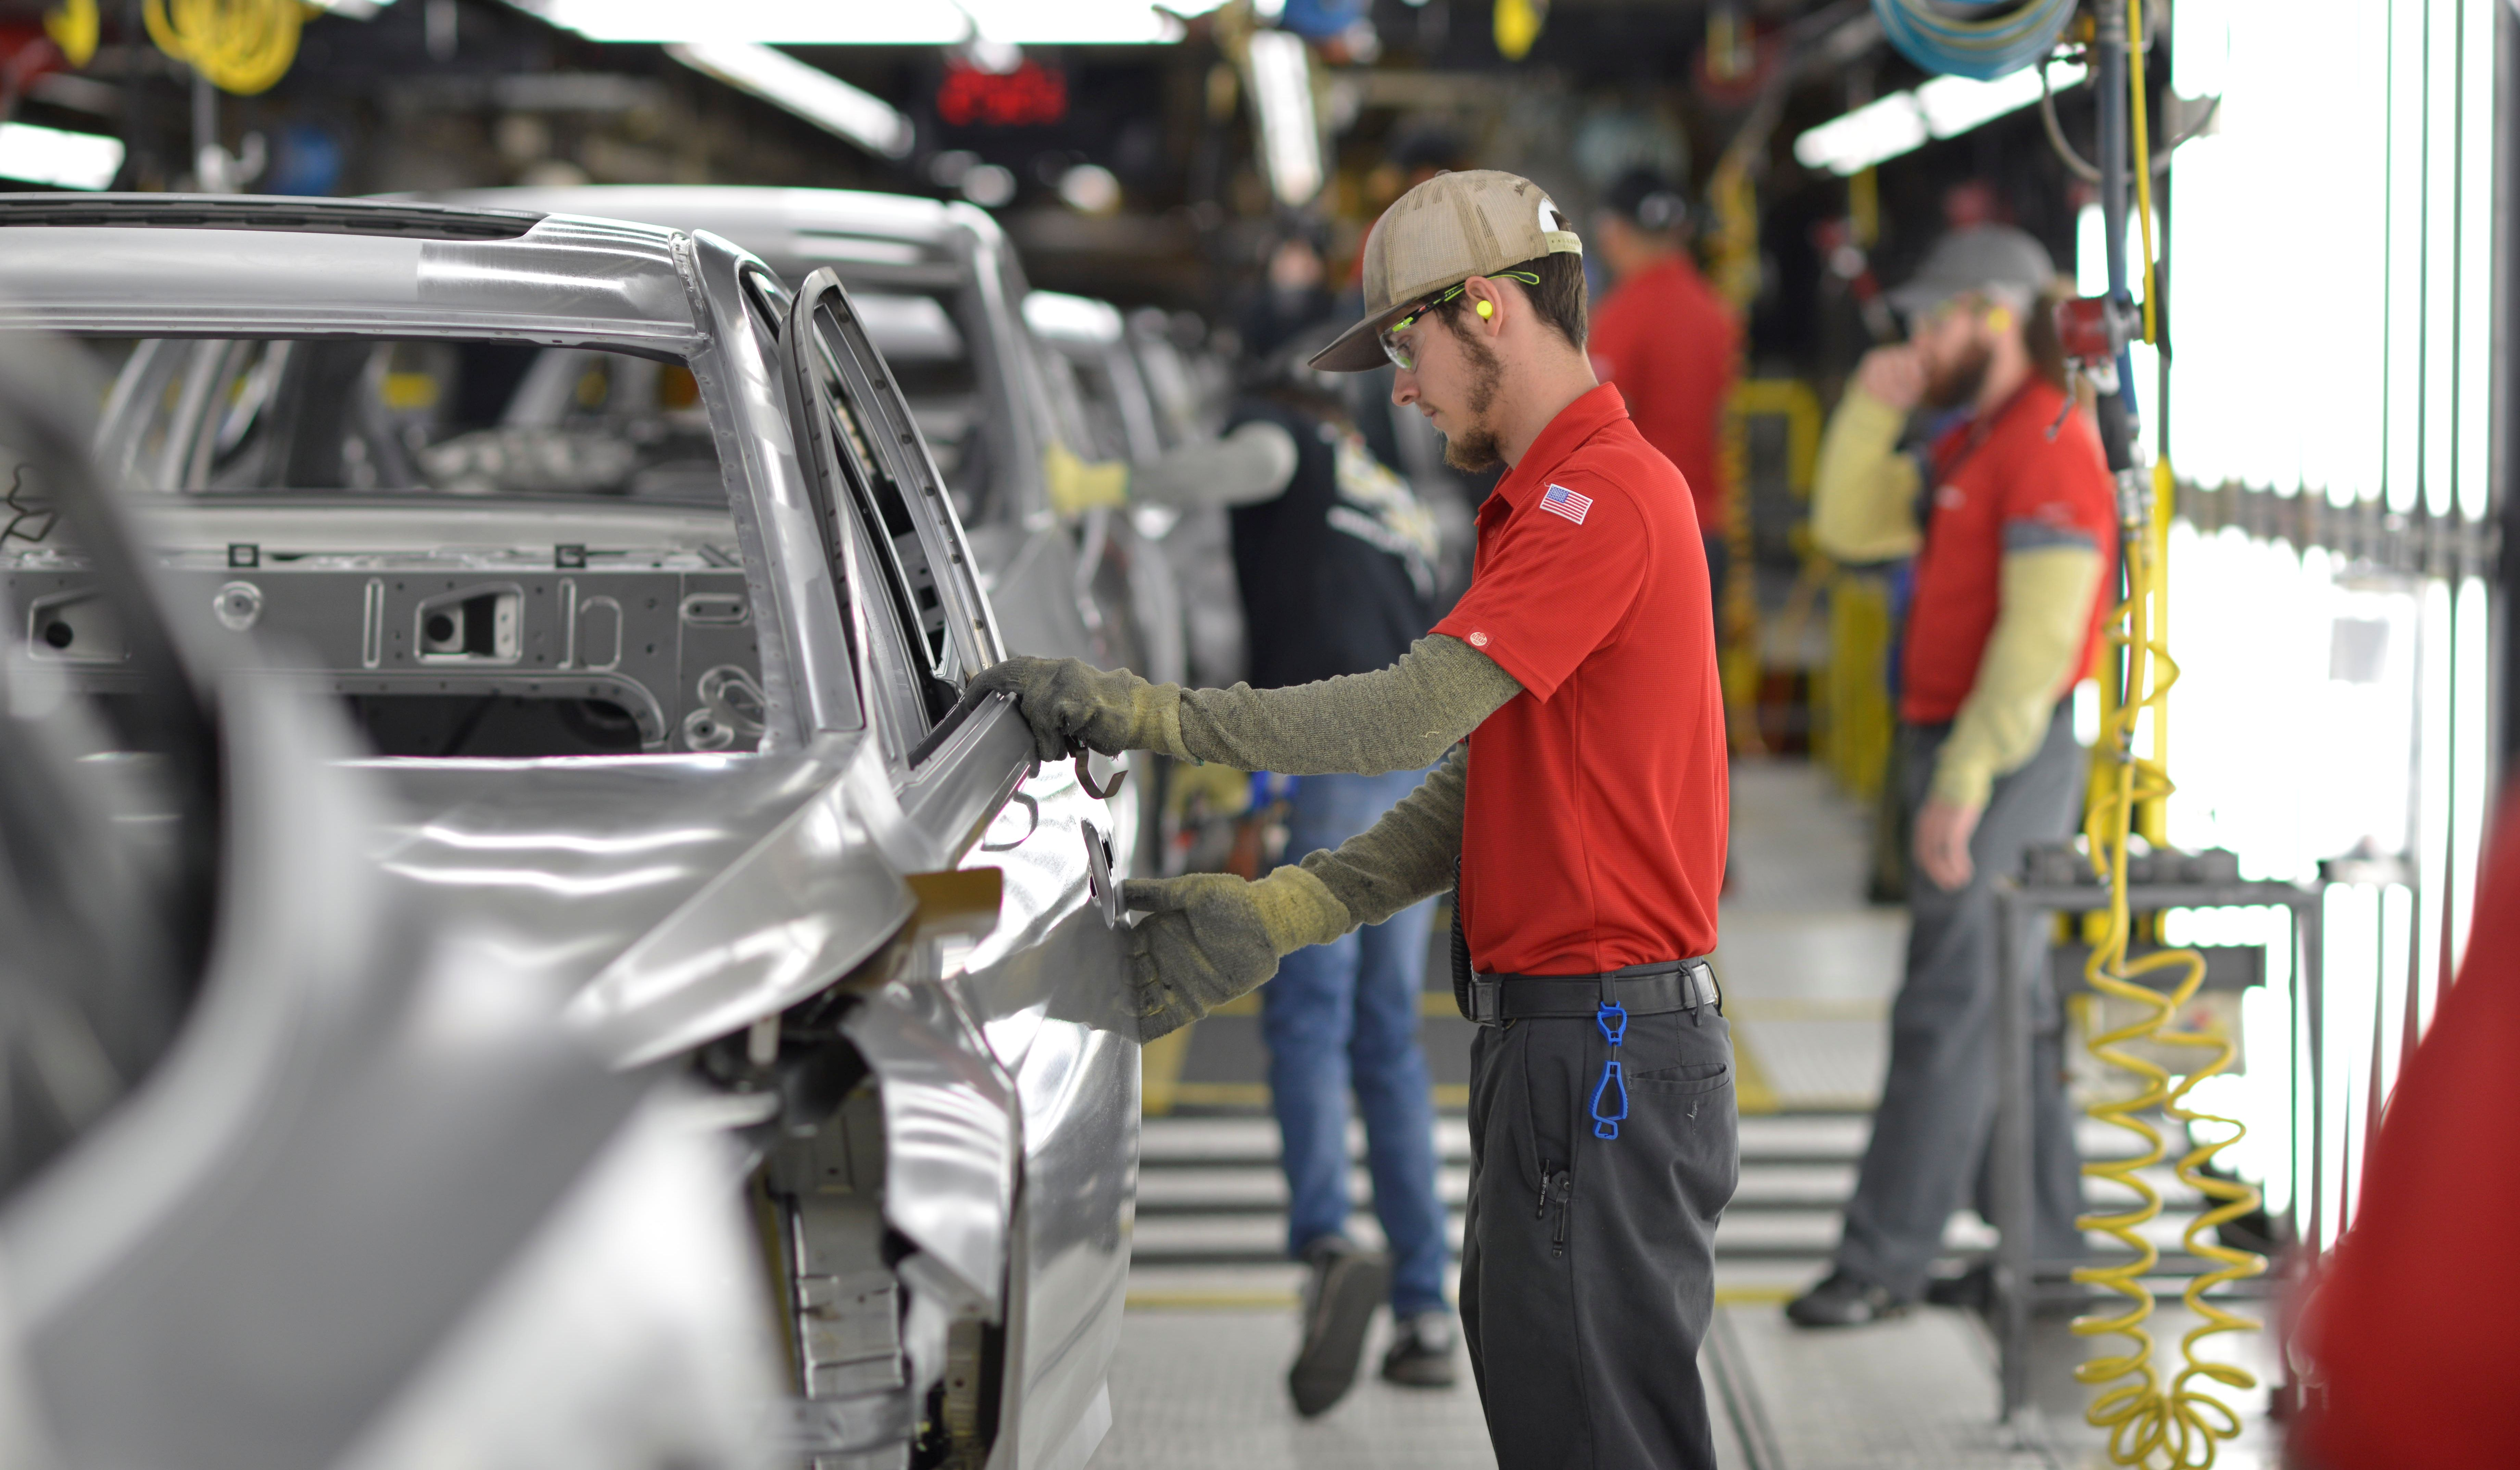 A line worker checks frames for imperfections at Nissan Motor Co's automobile manufacturing plant in Smyrna